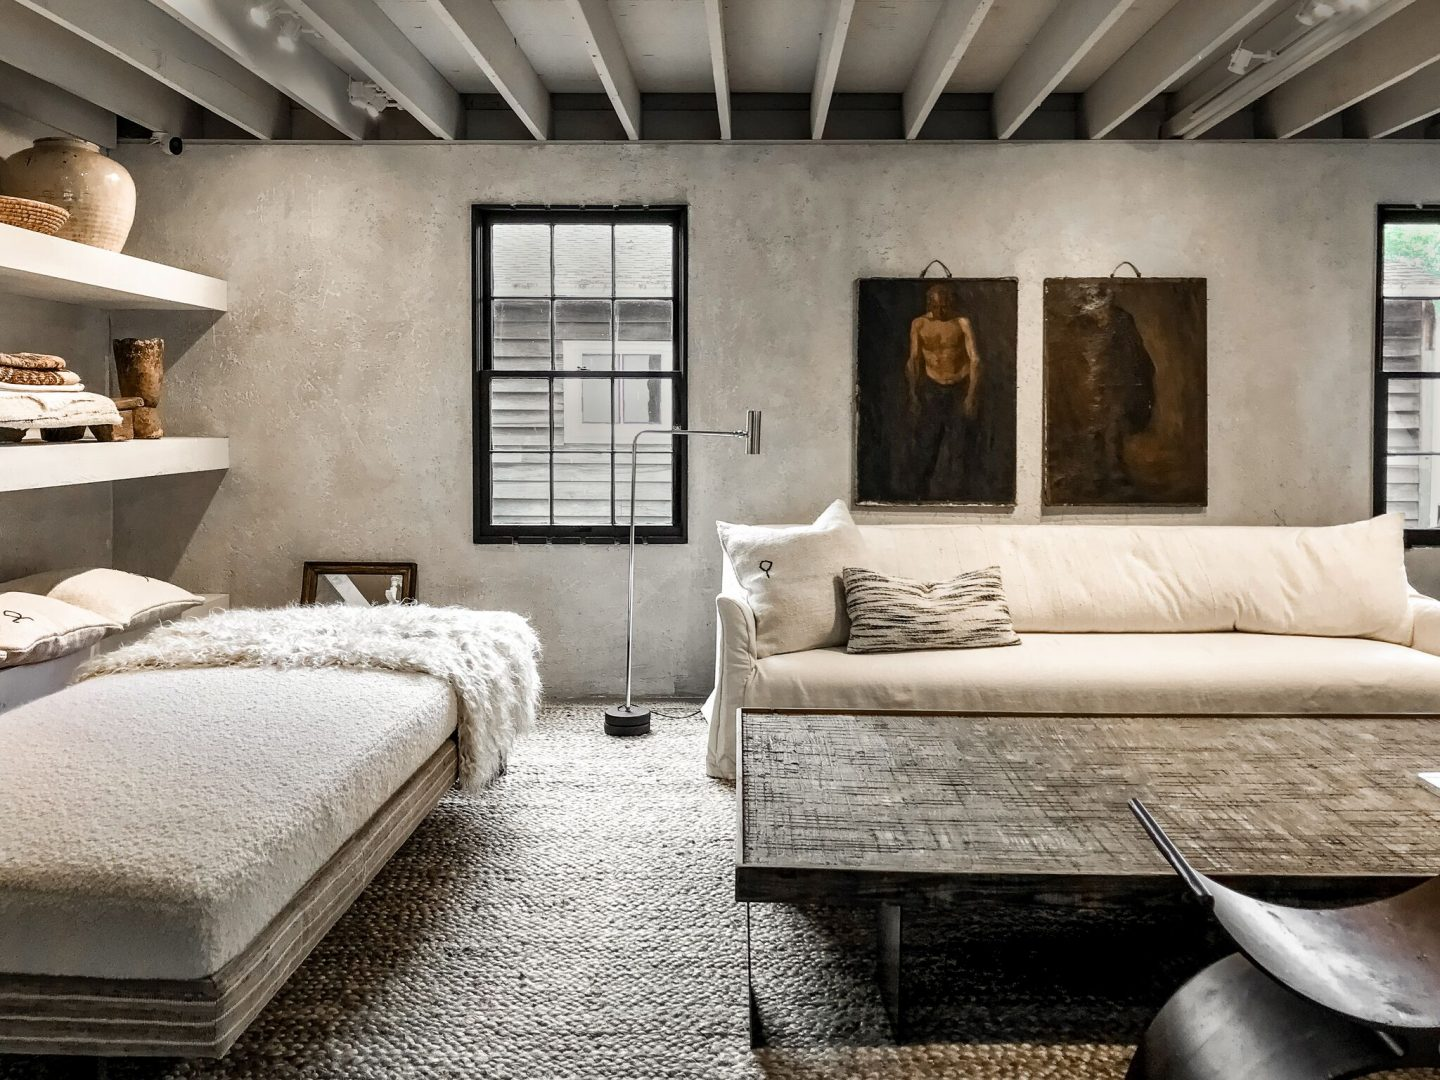 Rustic decor, luxurious interior design, minimal modern luxe, and Rustic Refined Interior Design reign in this room by Michael Del Piero. #rusticmodern #modernrustic #interiordesign #luxuryminimalism #minimalmodern #modernancient #sophisticateddecor #interiordesigner #michaeldelpiero #hamptons